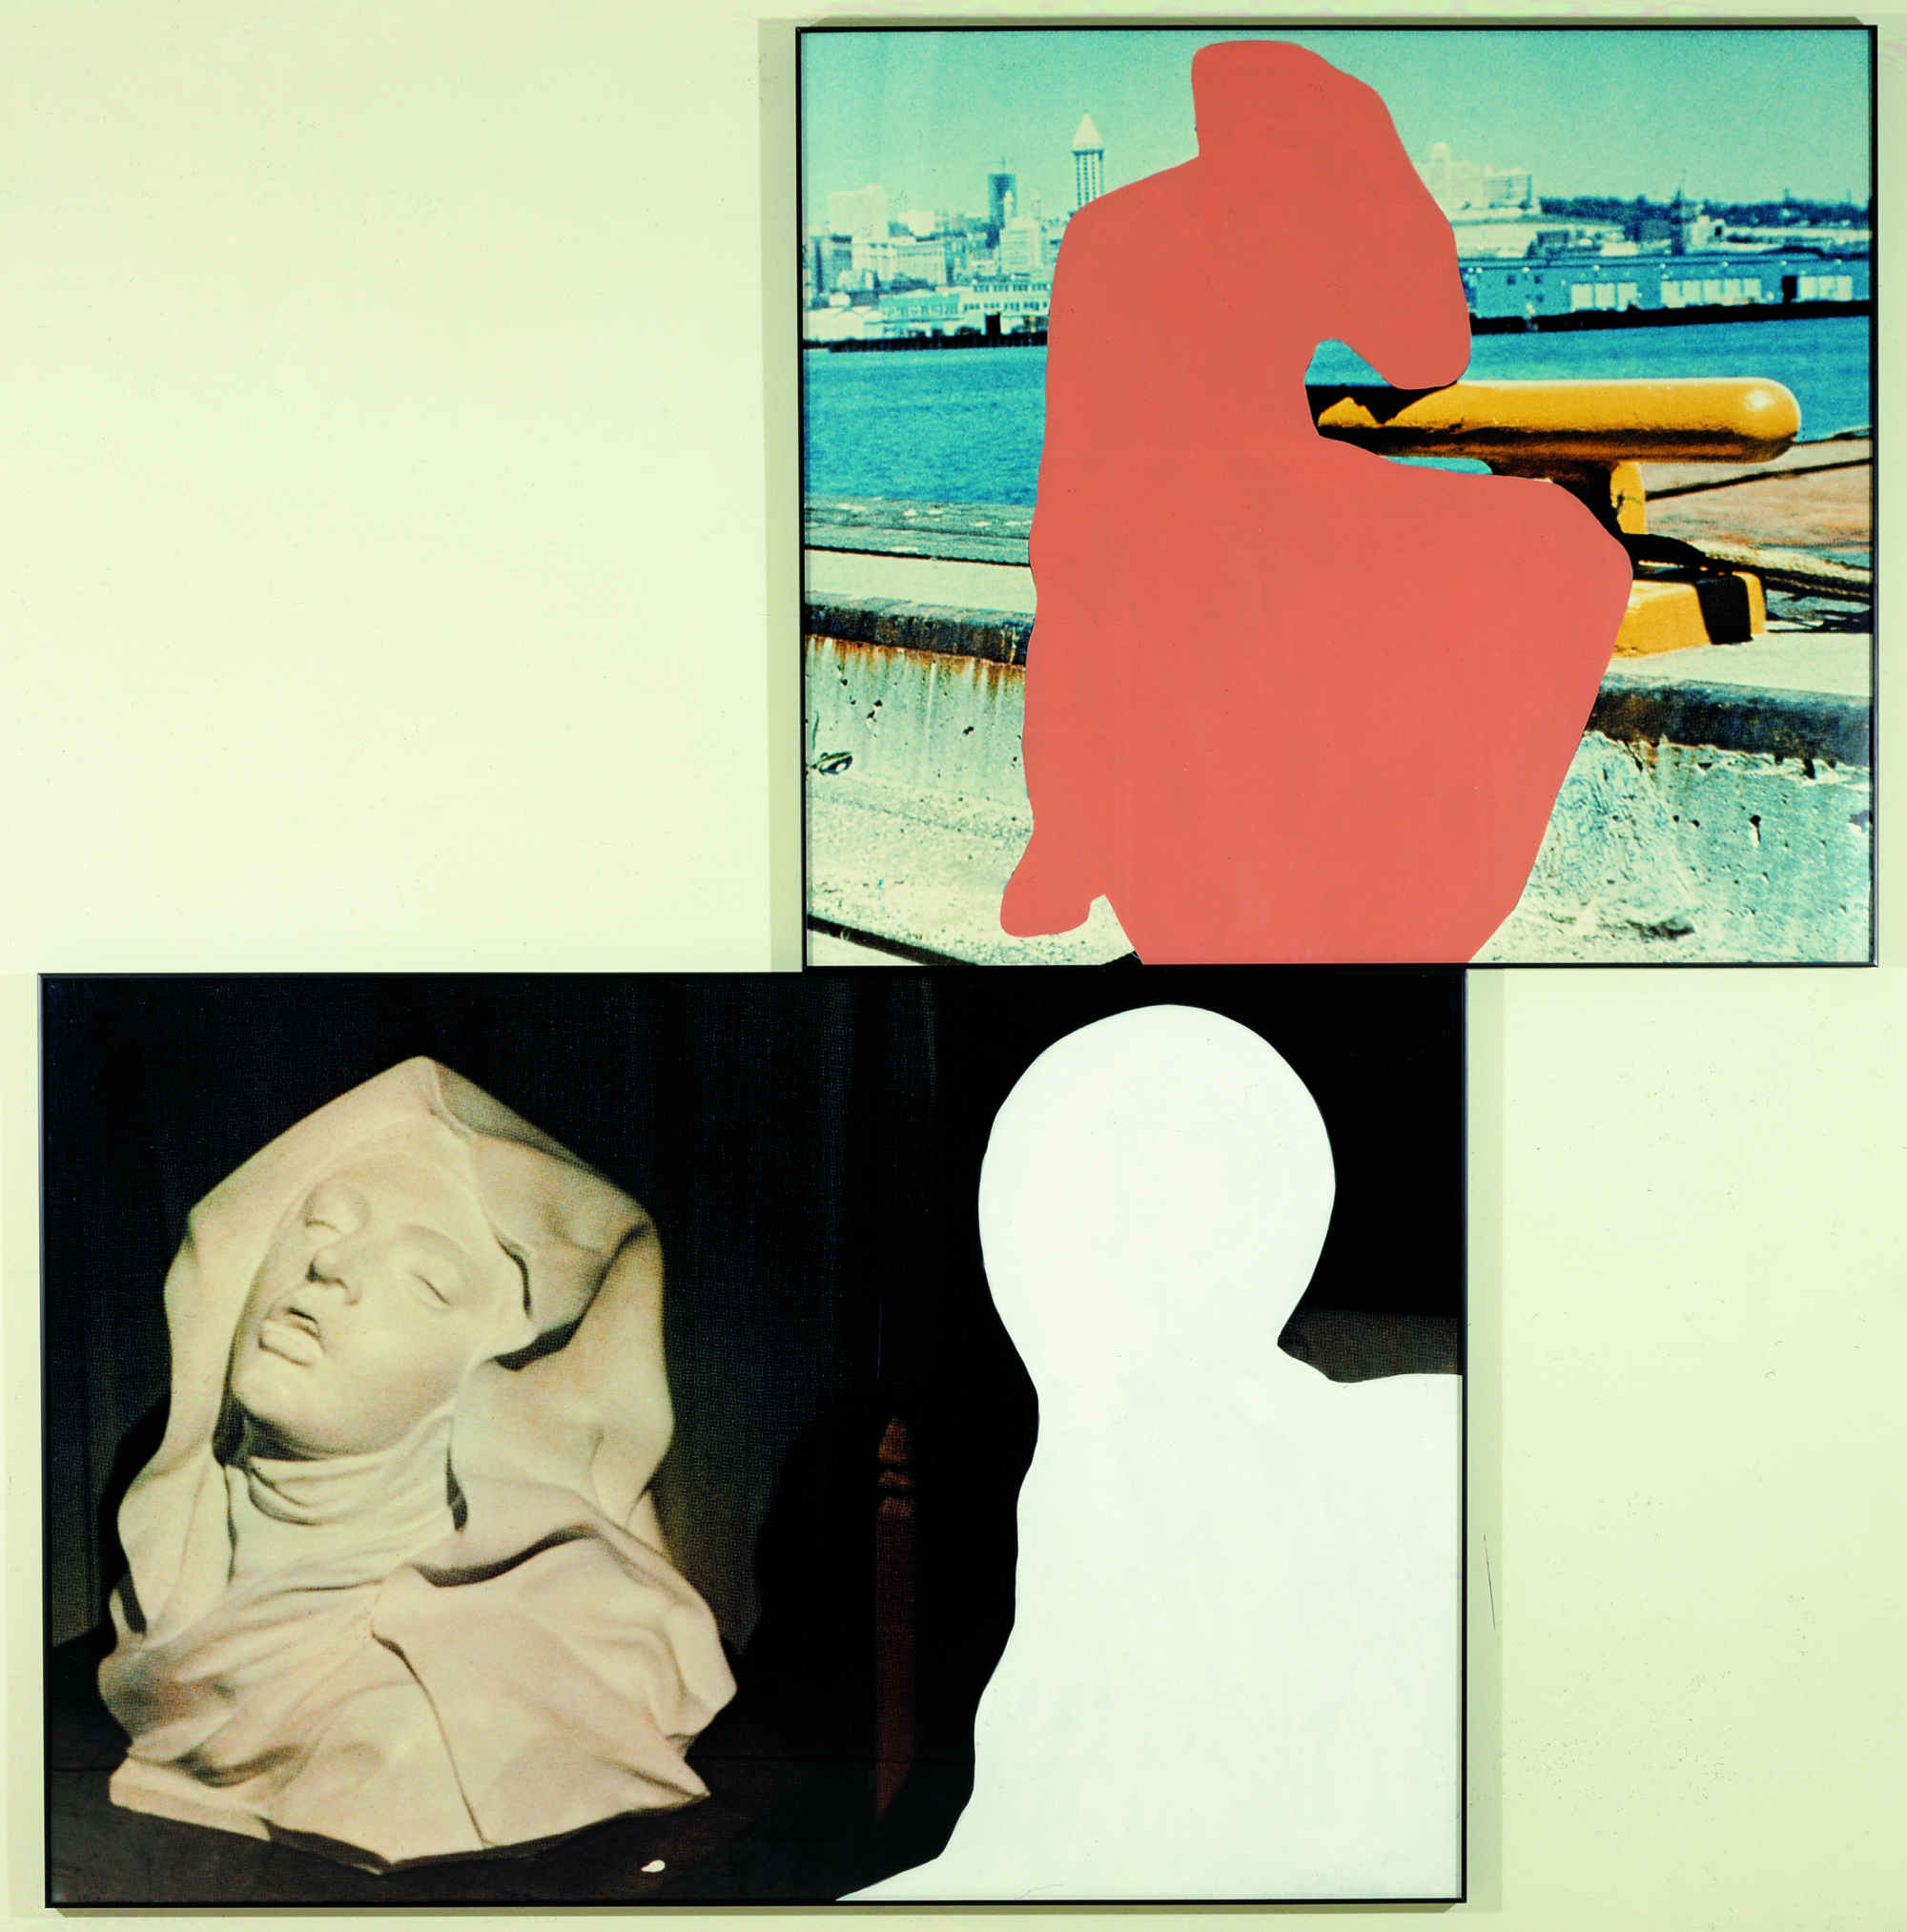 In Pink Shape over Enrapted Figure (near white shape), John Baldessari mixes photo and film, abstract and figurative.